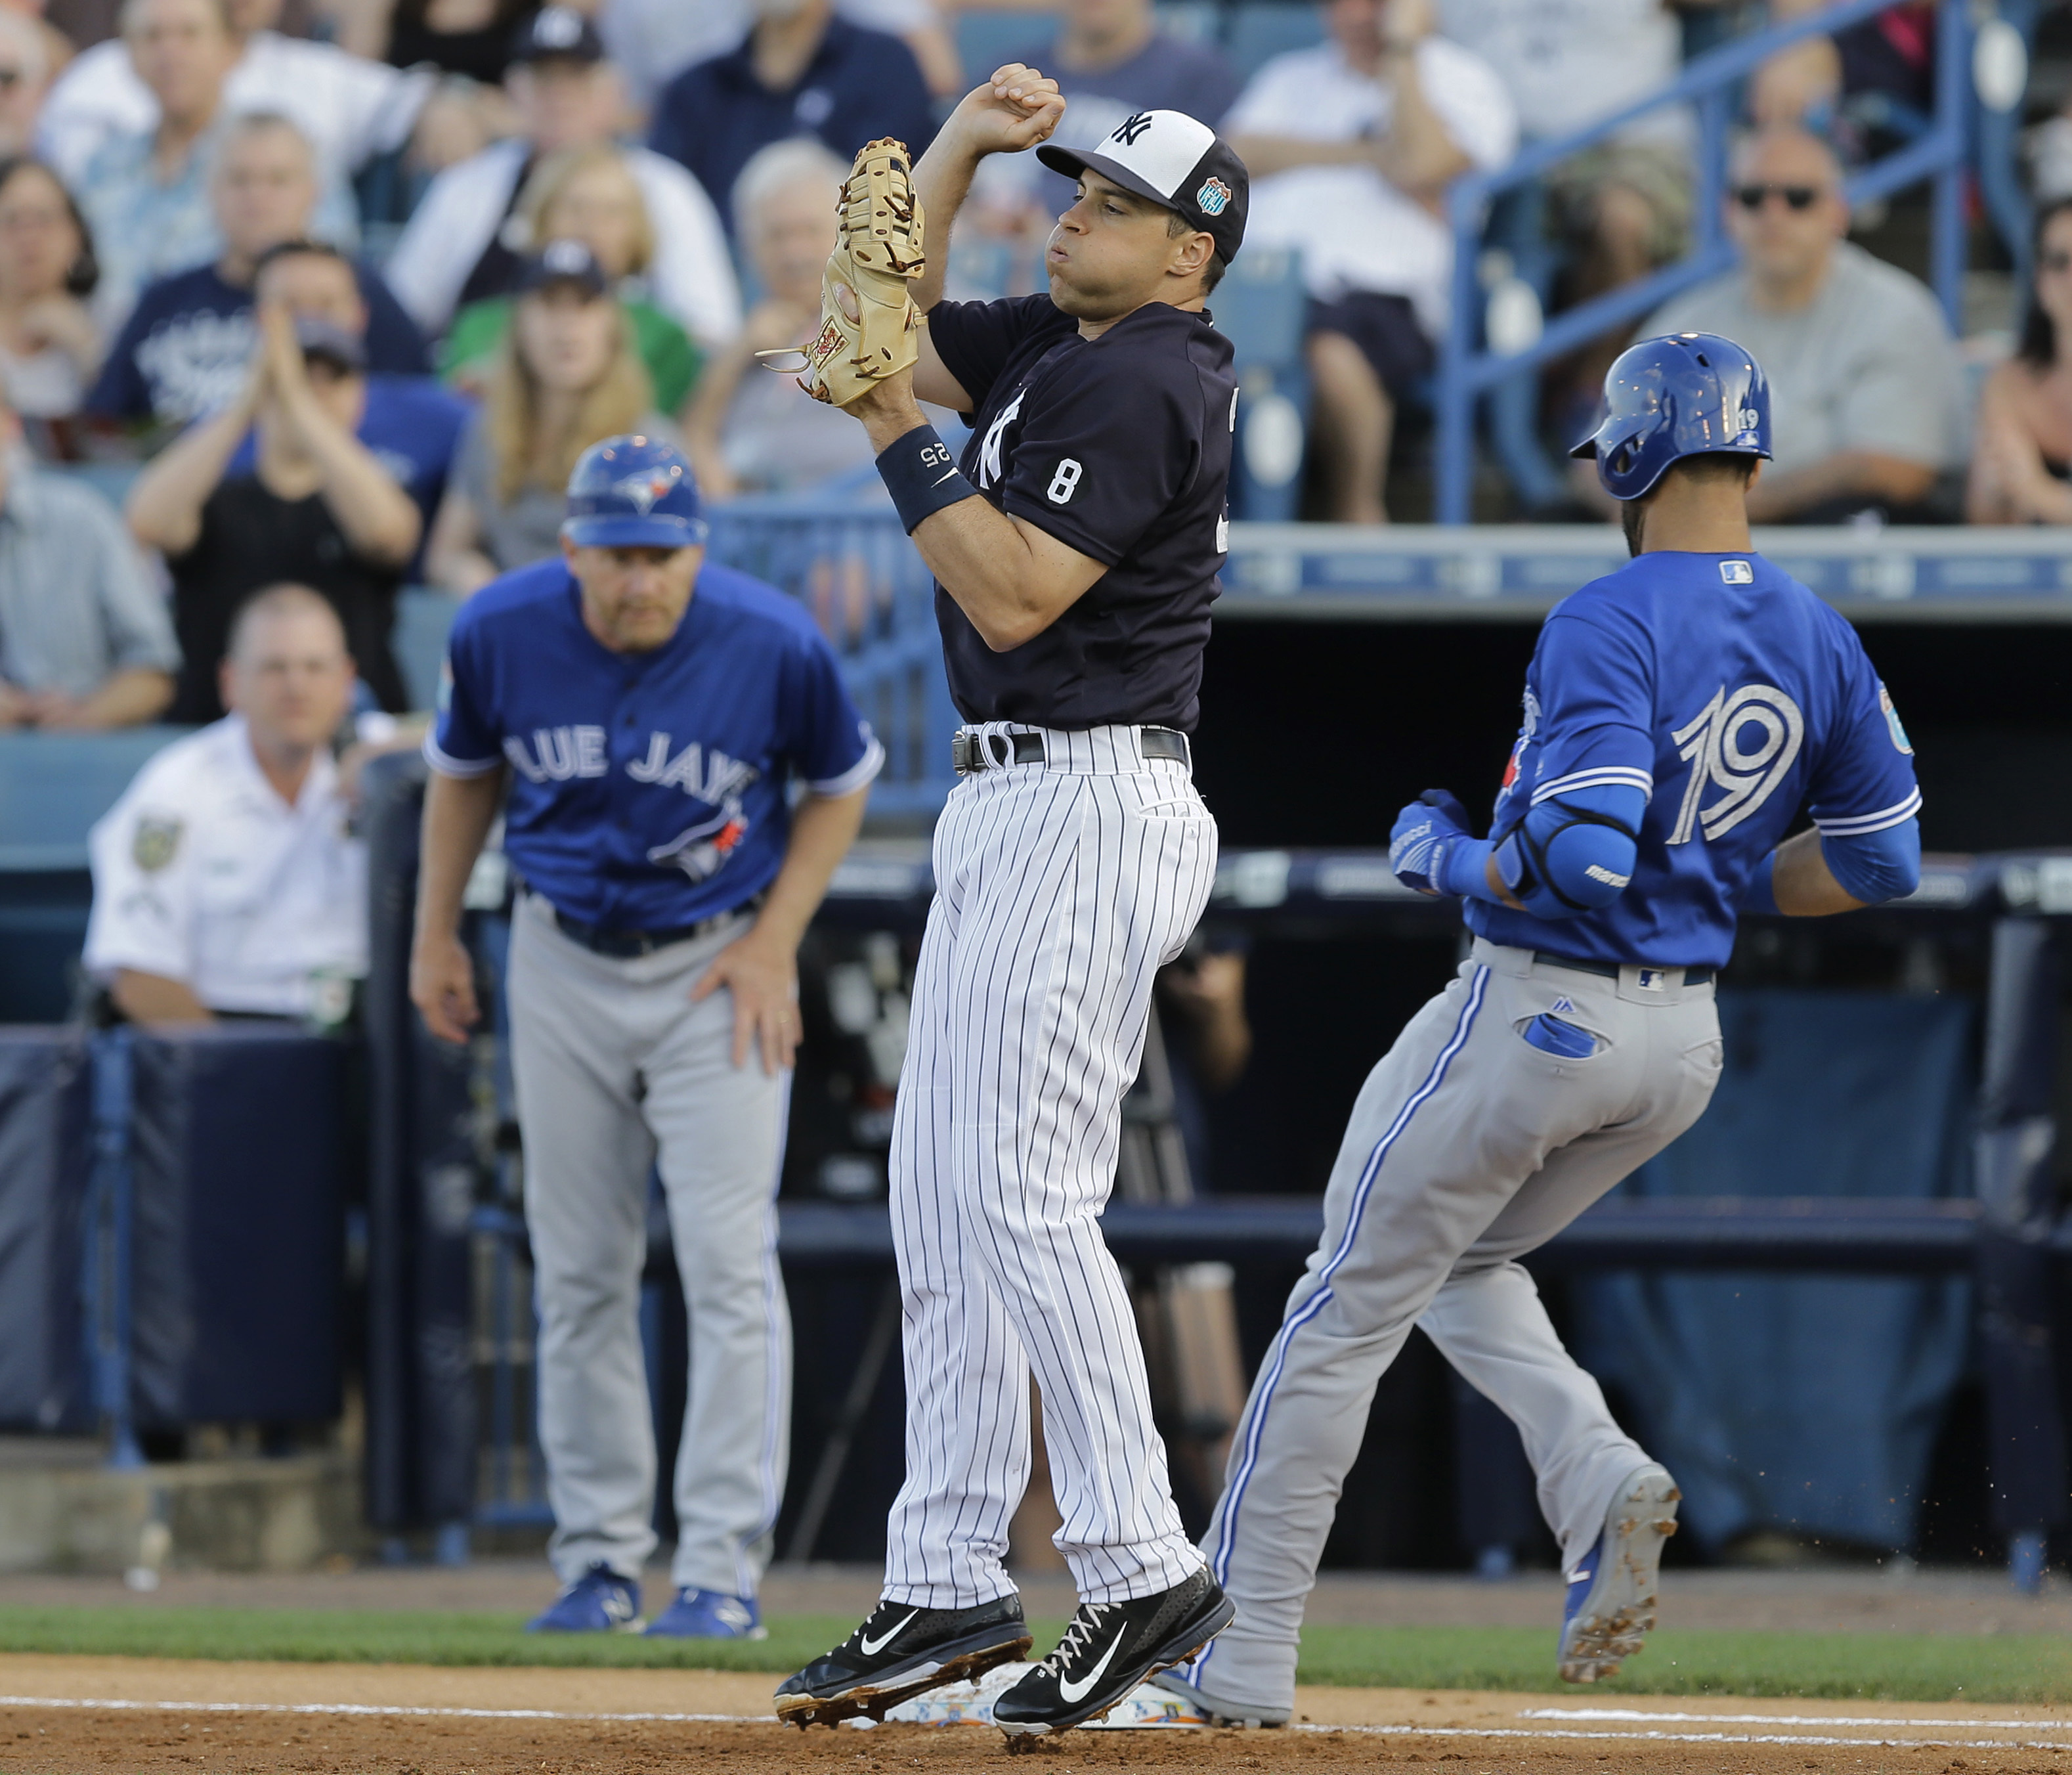 New York Yankees first baseman Mark Teixeira reacts as he gets out of the way after getting Toronto Blue Jays' Jose Bautista out at first base during the first inning of a spring training baseball game, Wednesday, March 16, 2016, in Tampa, Fla. (AP Photo/